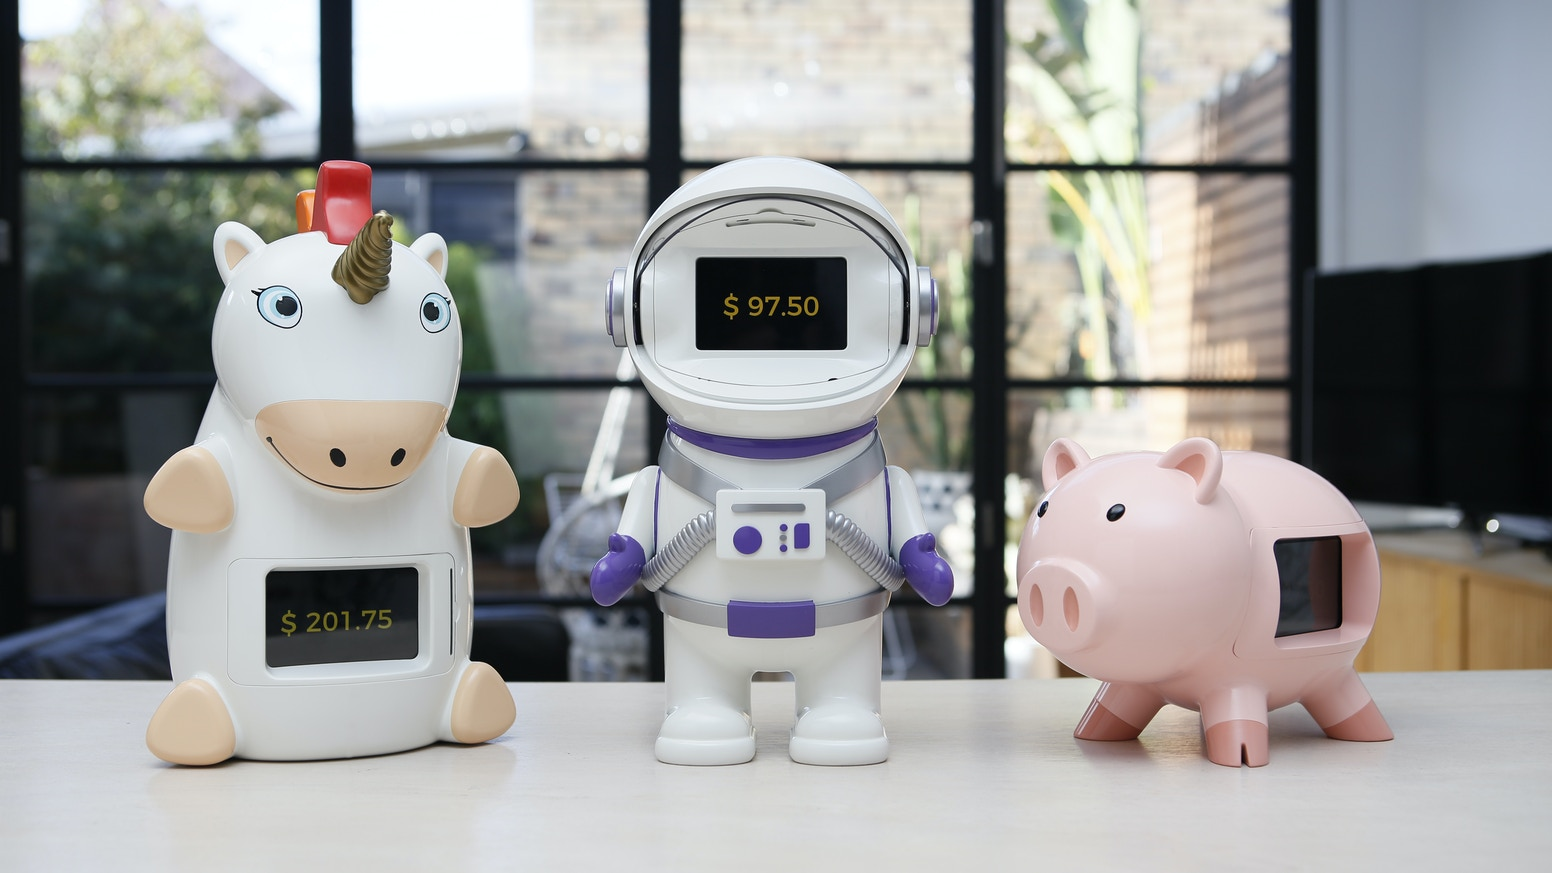 Smart piggy banks designed to help you teach your kids to save, earn and spend wisely.